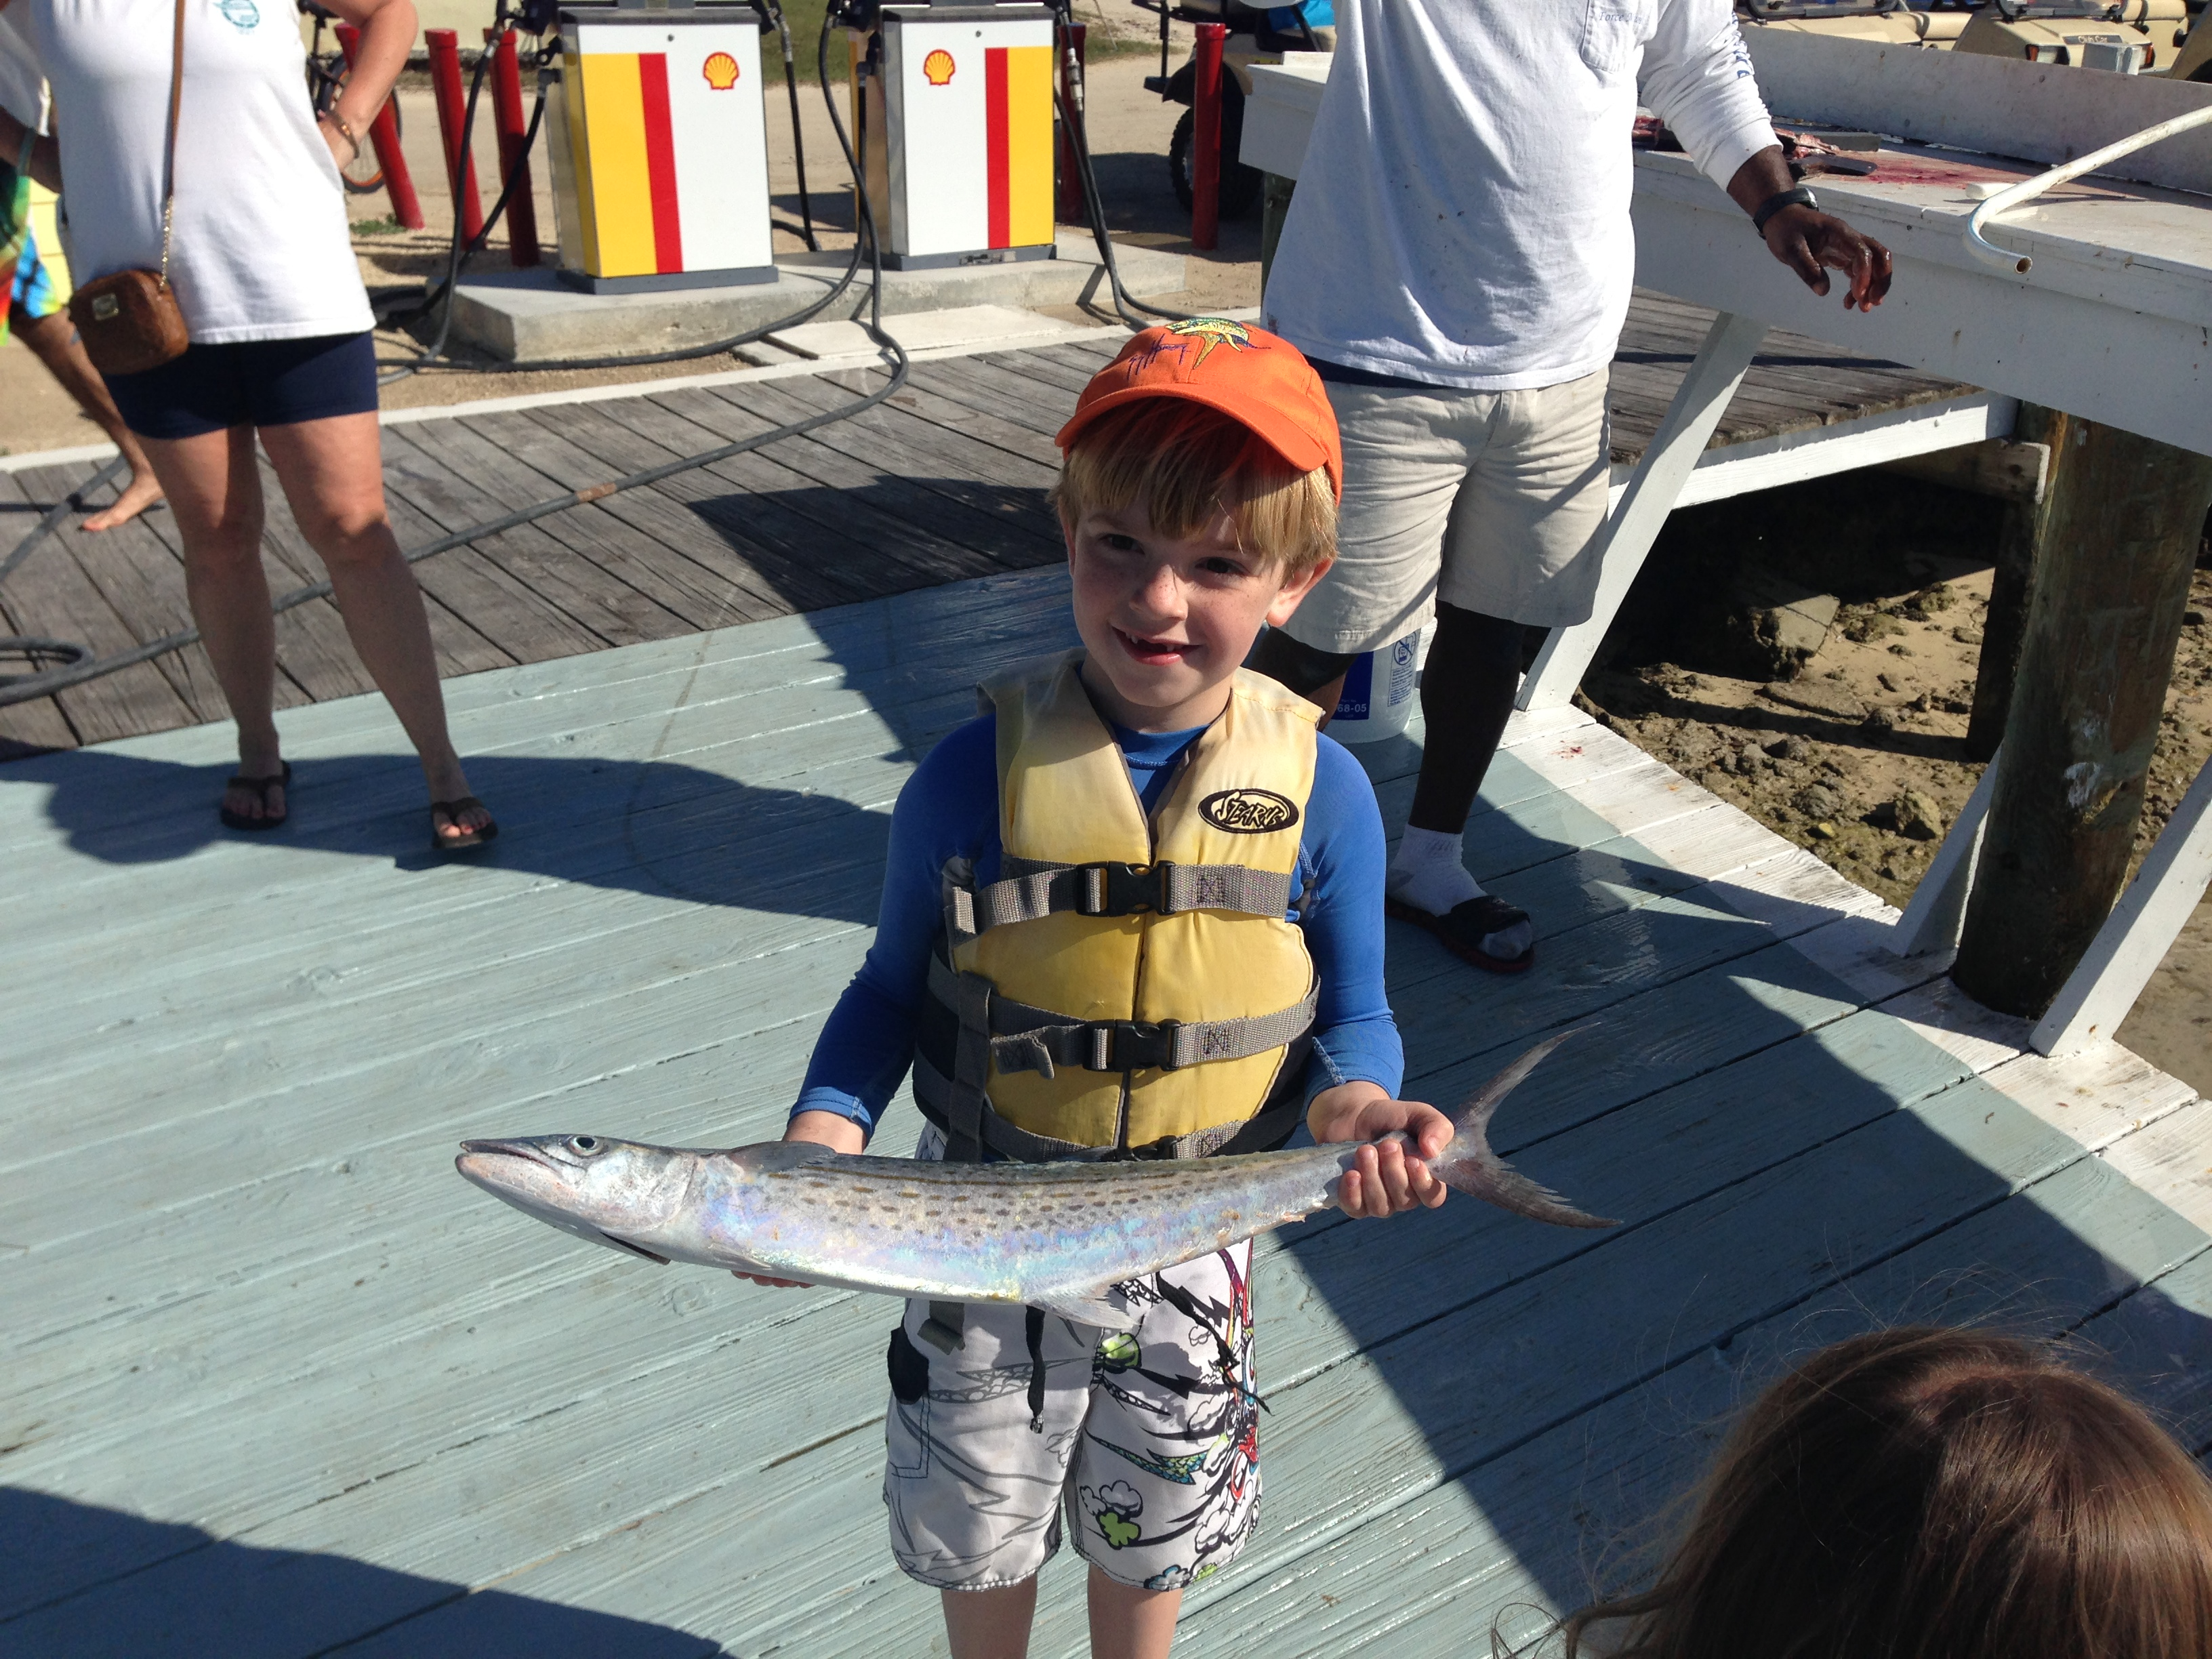 Holy Mackerel! Son Will with his big catch.